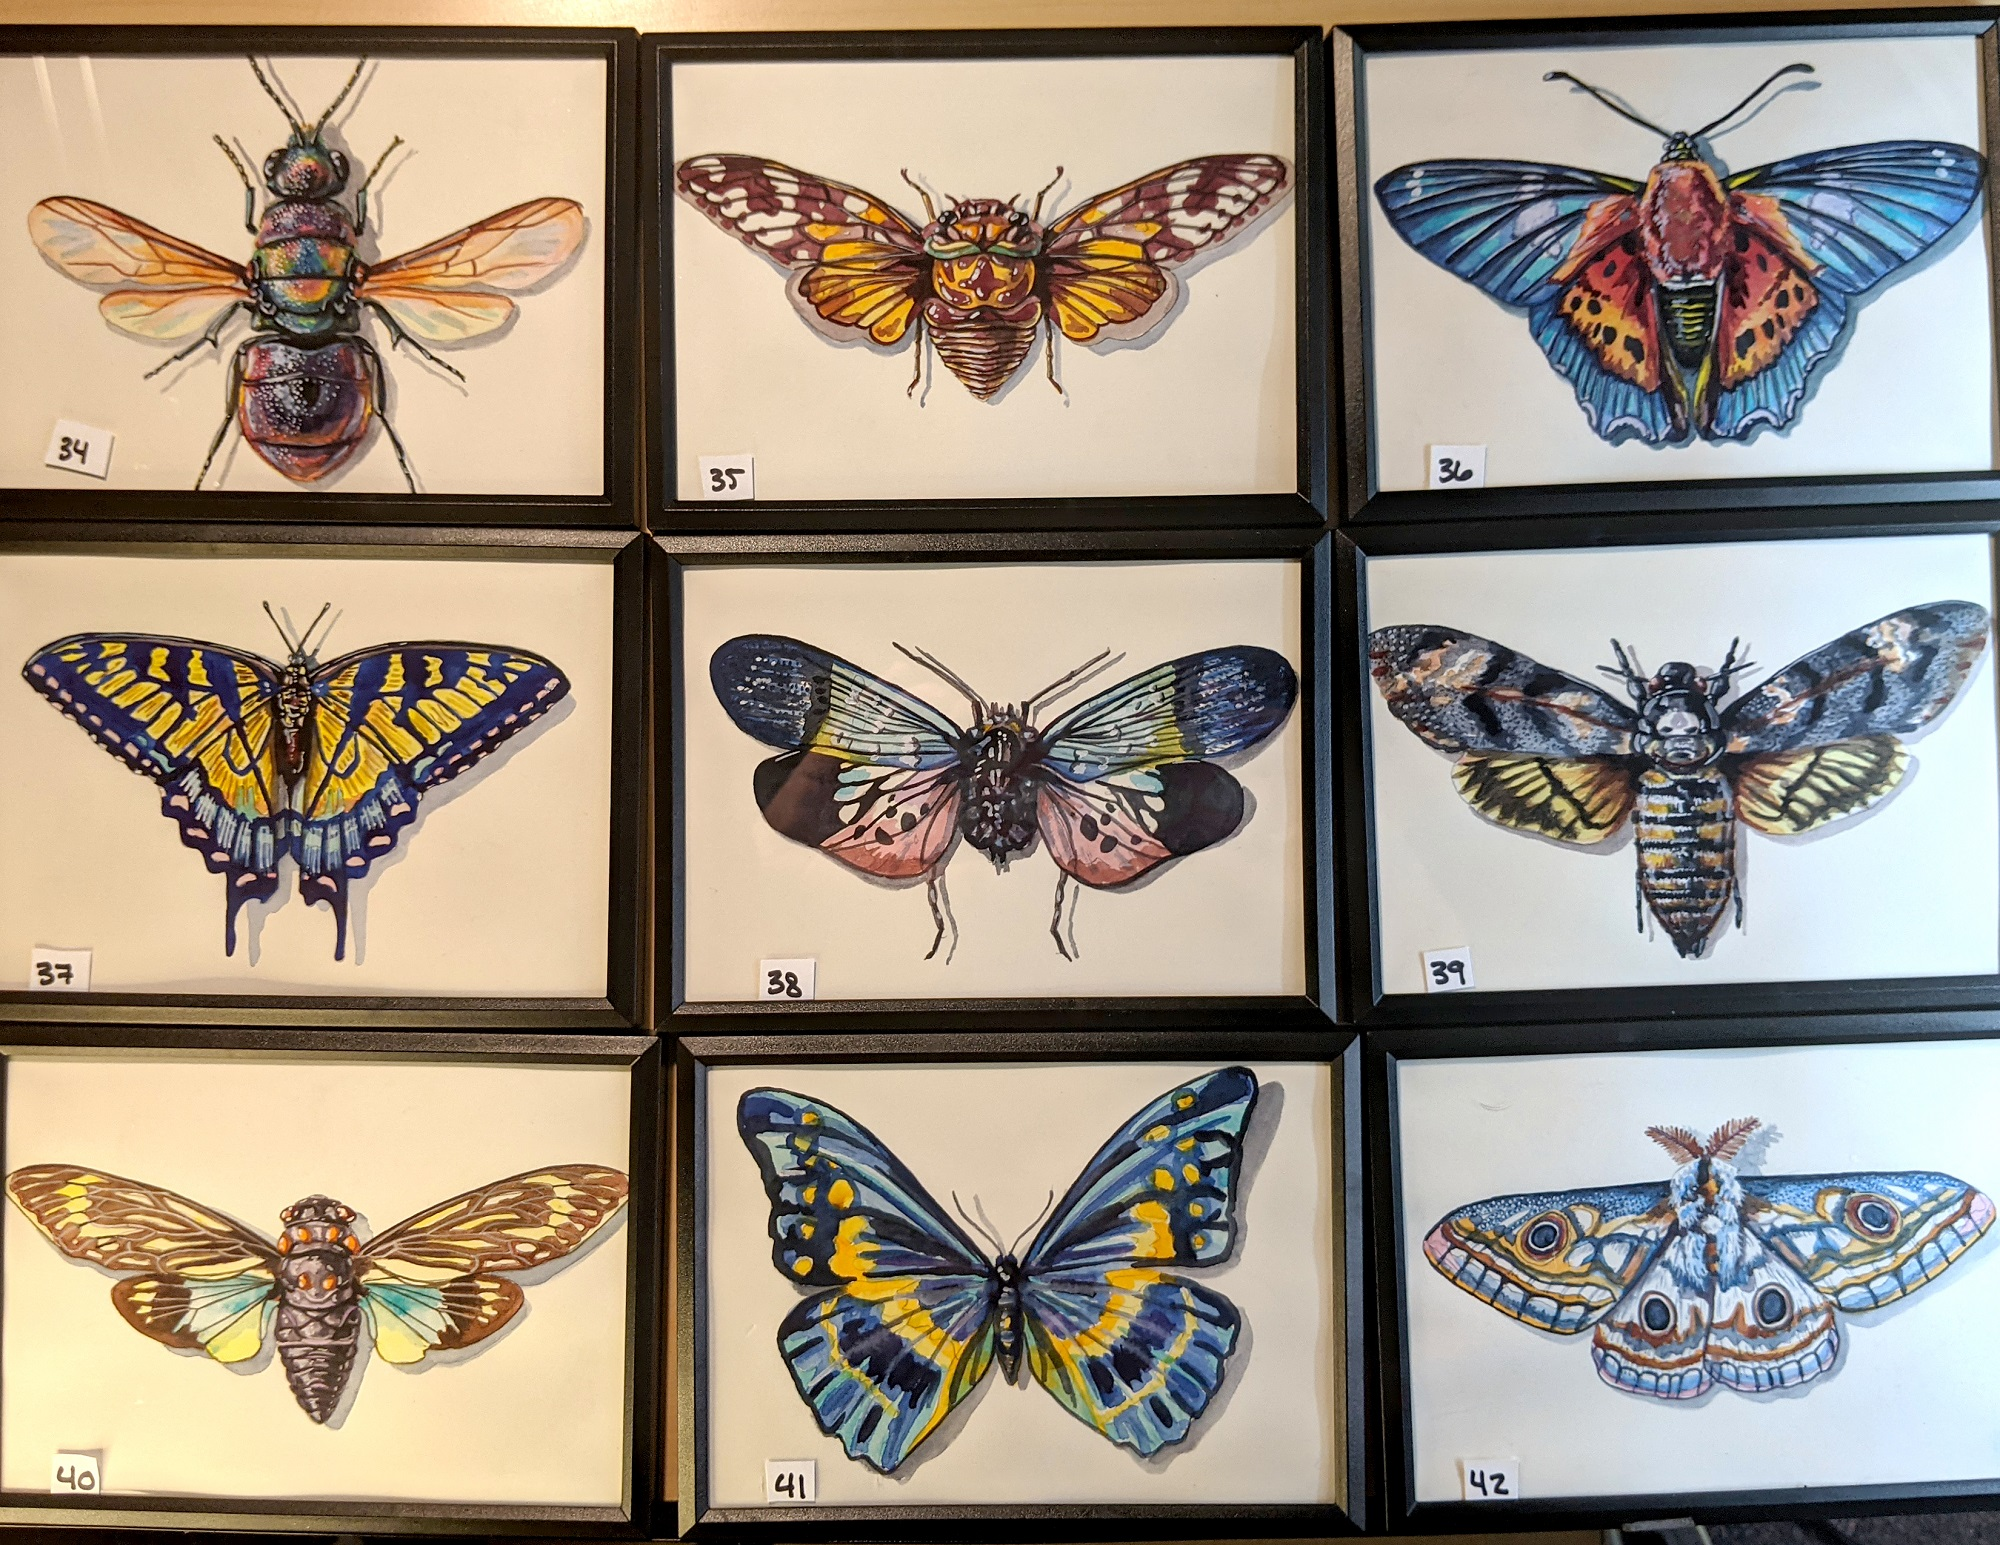 Small Insects 34 – 42 By Martha Iserman (Petals And Wings Exhibition)